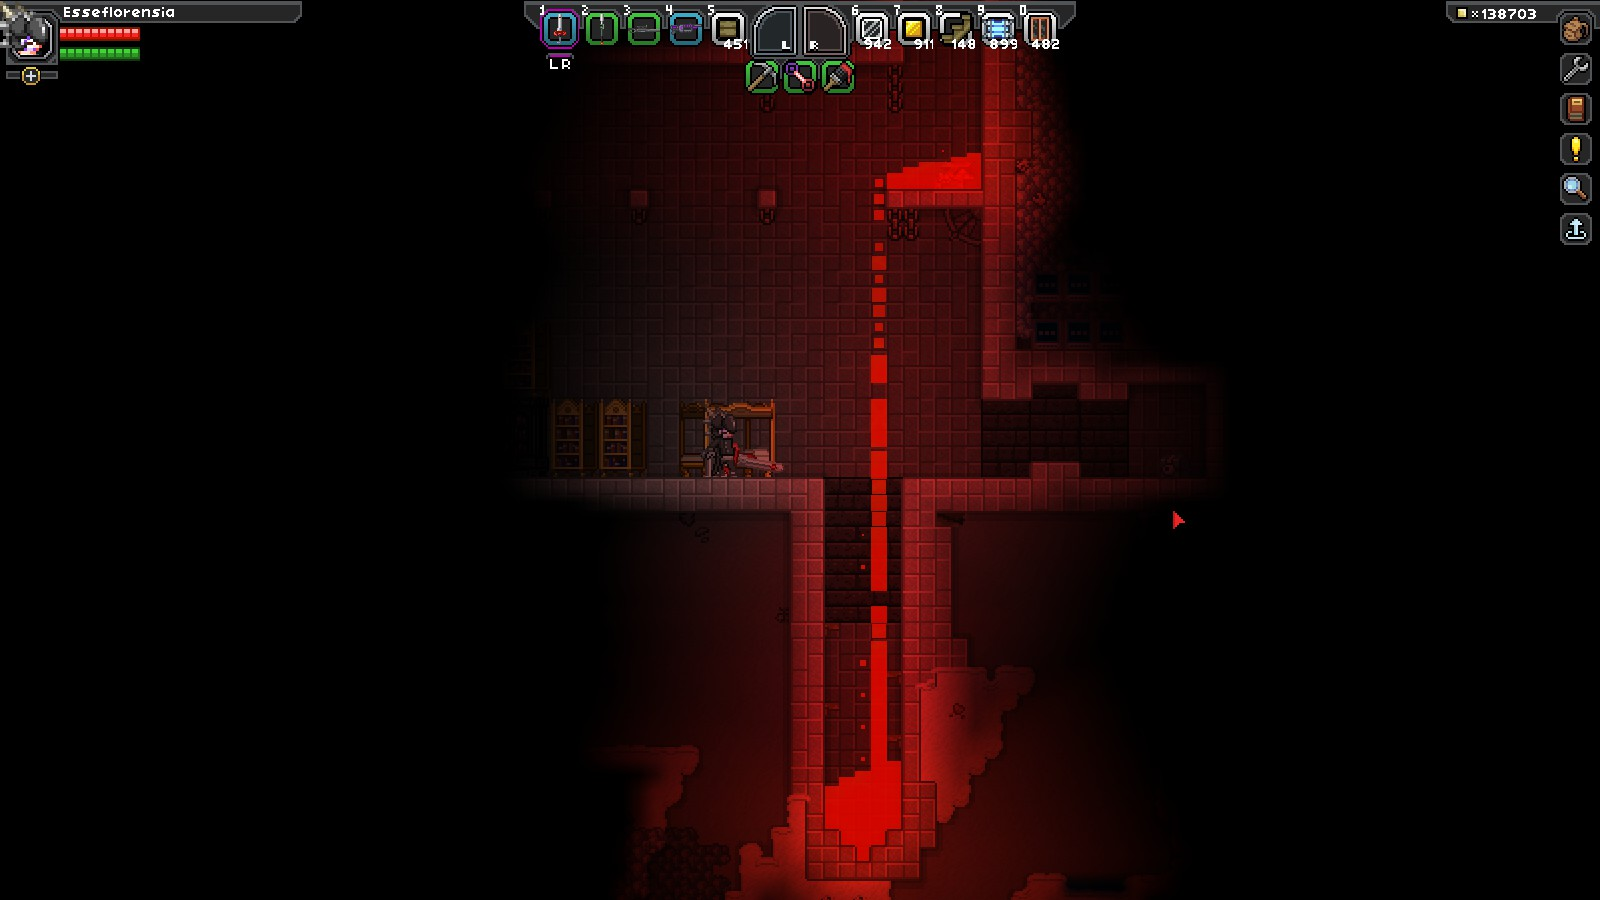 Machinima Starbound The Monsters Below Wiring Creations Image 59650bd21b41b5198e05058350a1773f795d2836